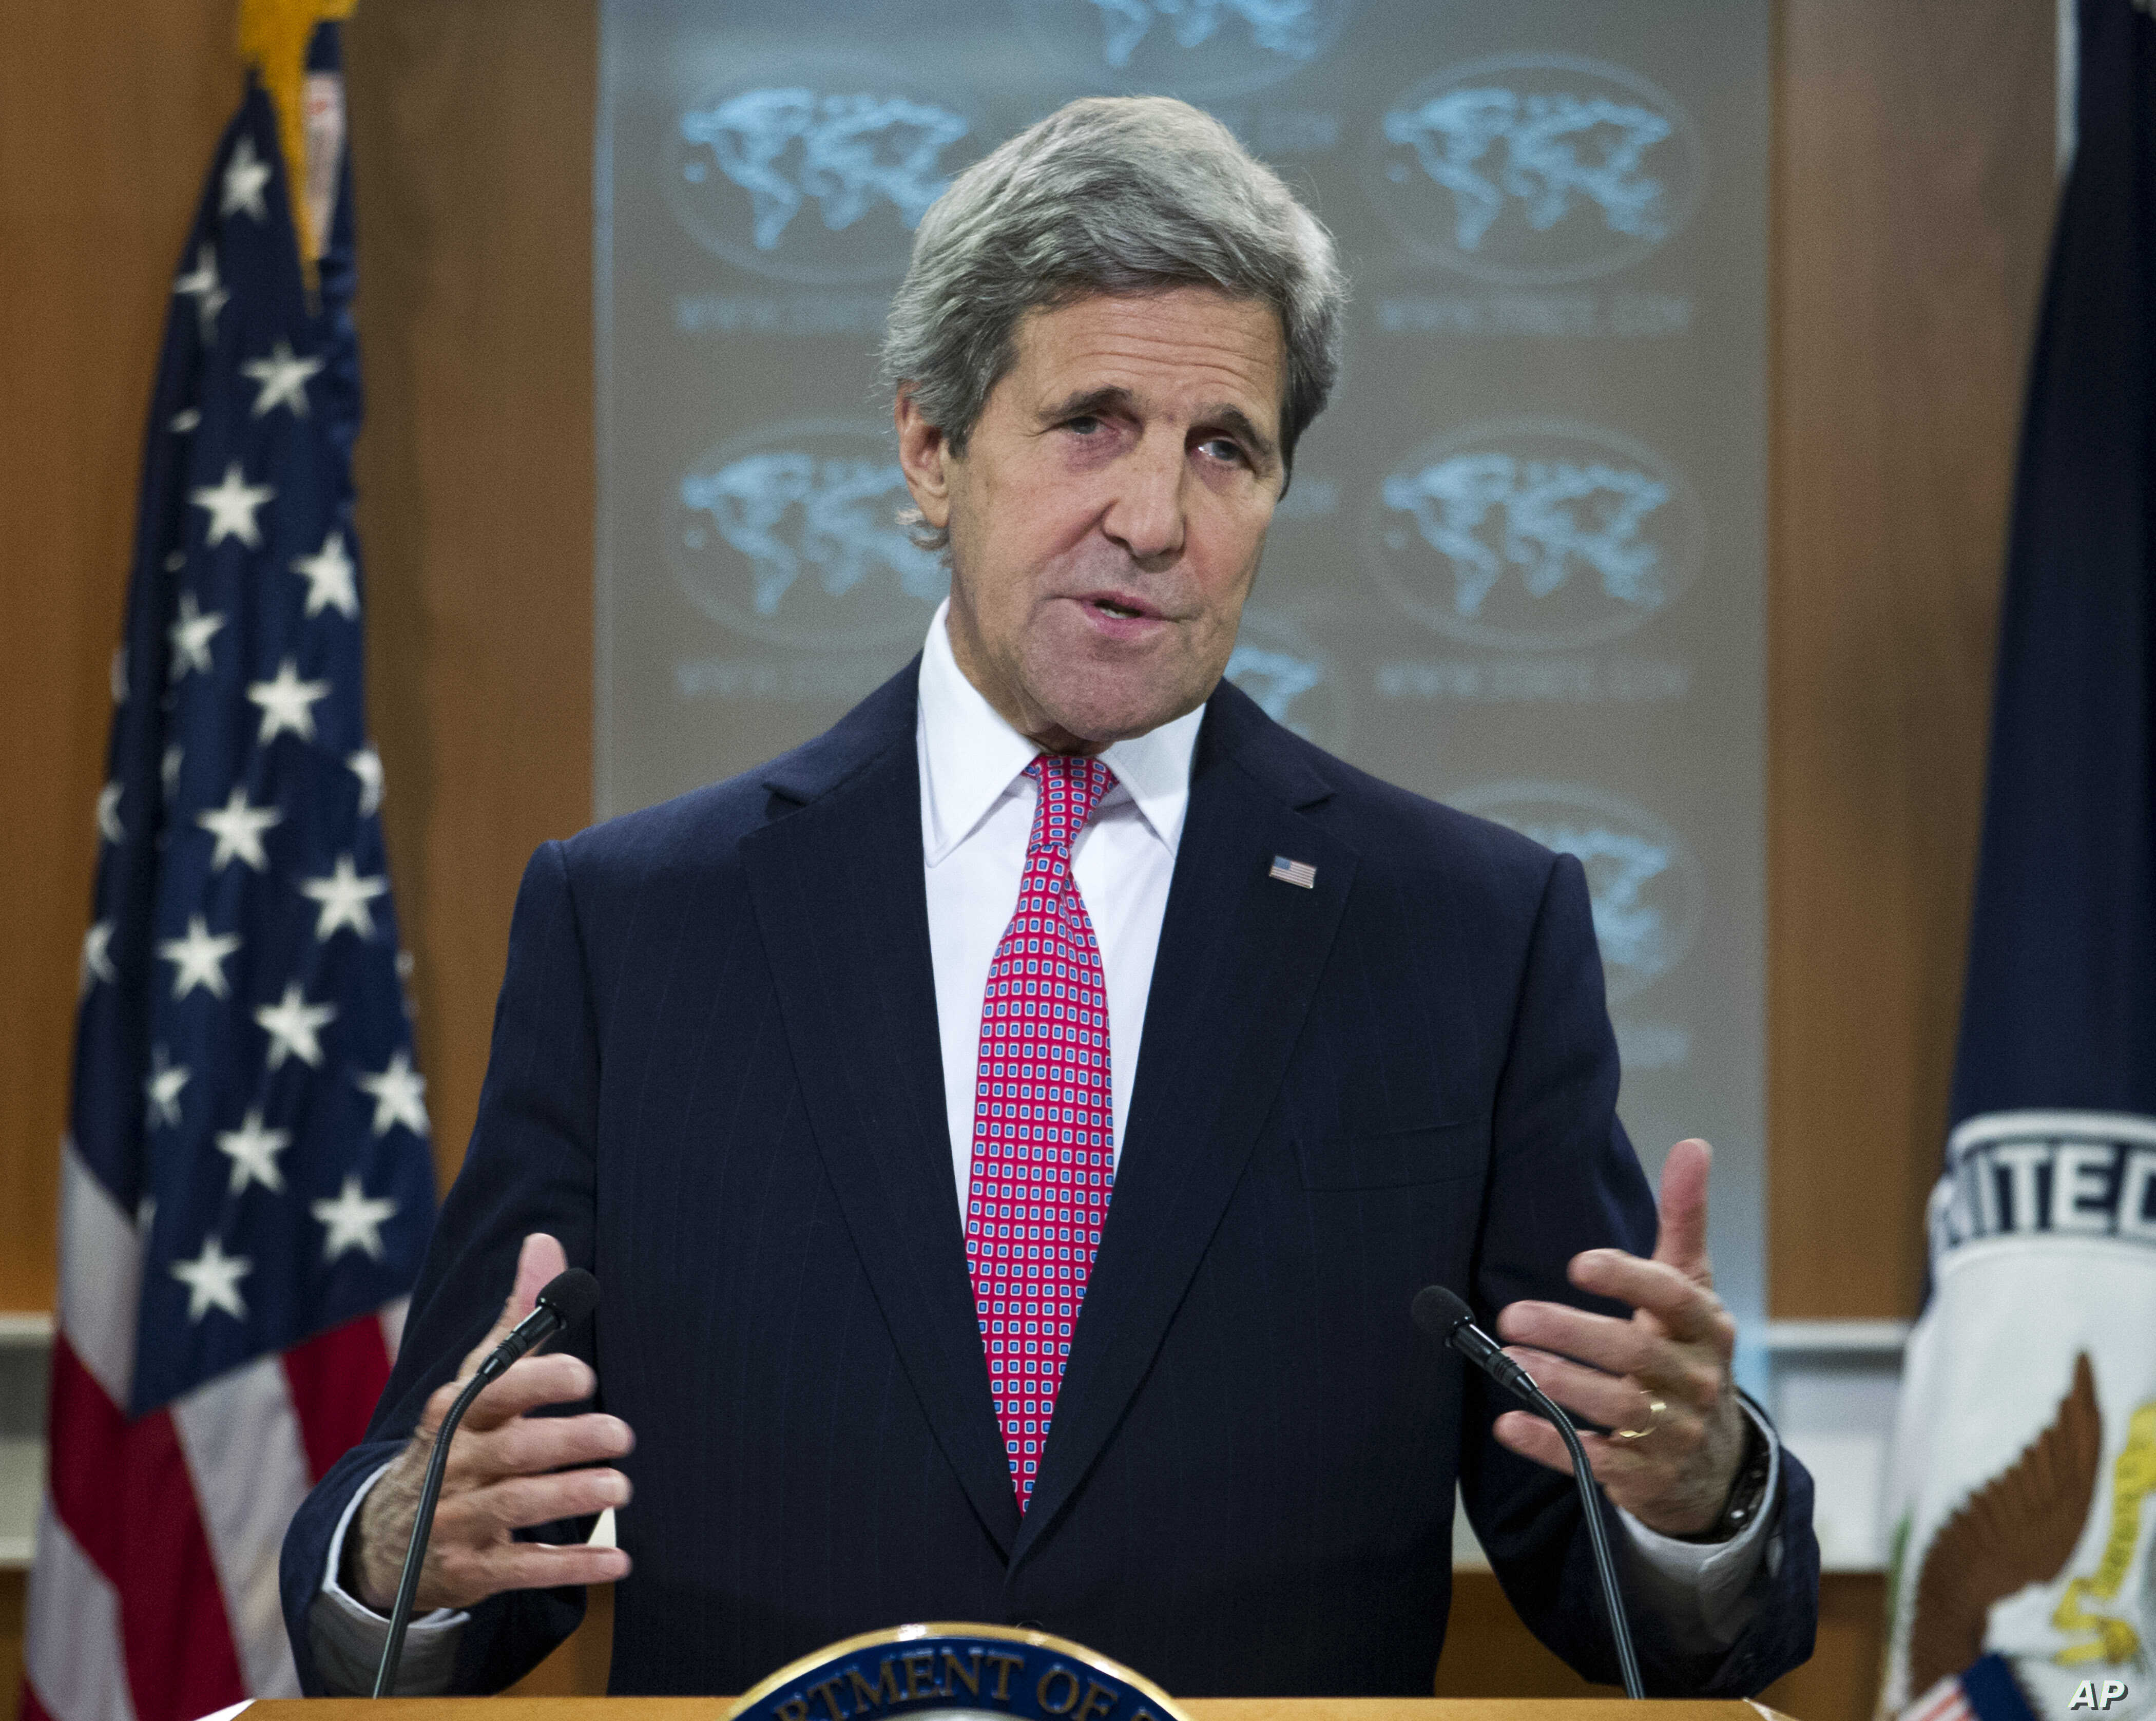 Secretary of State FILE - John Kerry presents the 2015 Country Reports on Human Rights Practices, at the State Department in Washington.